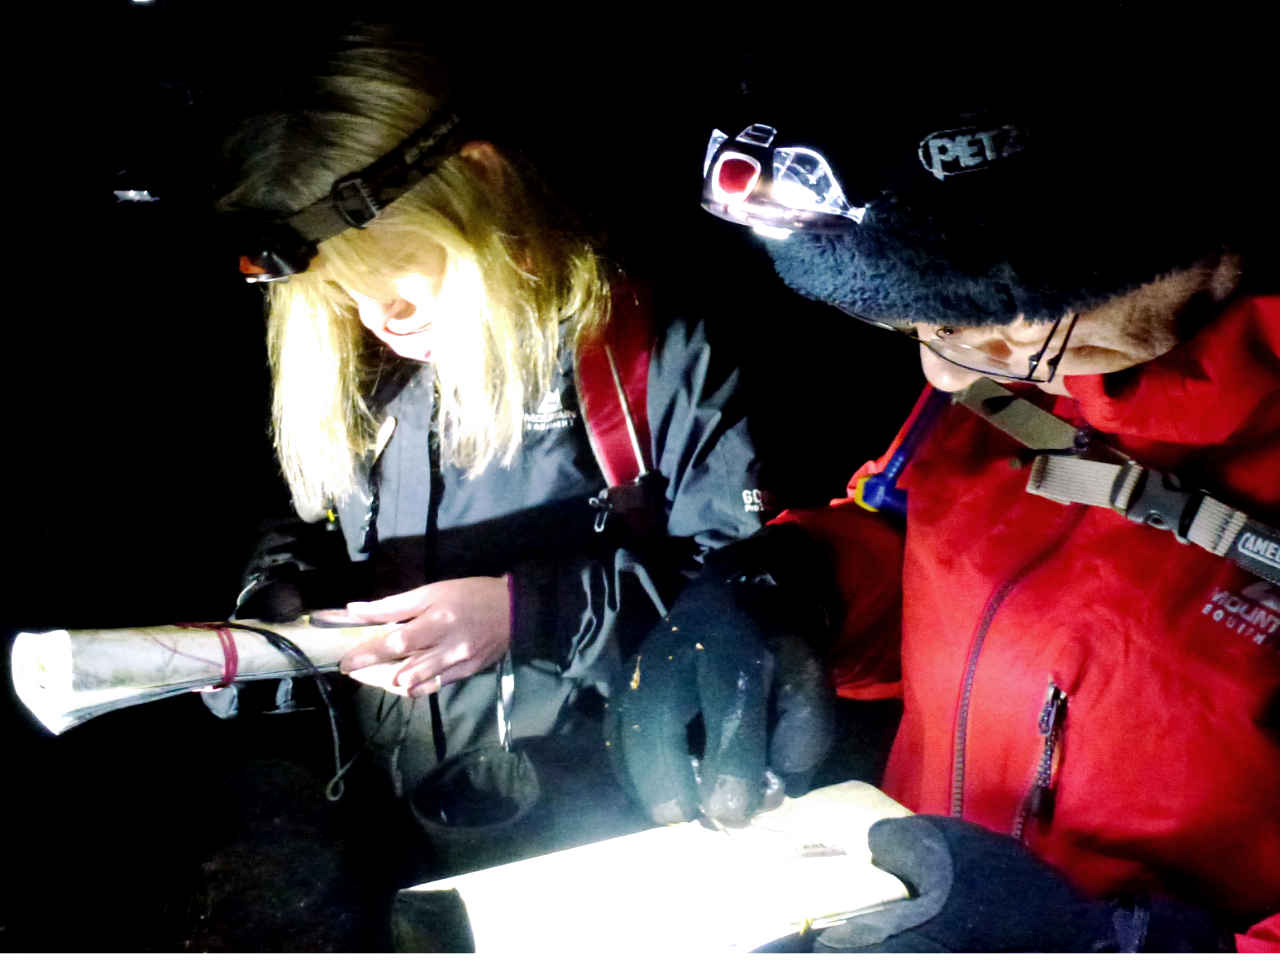 Head torches light up a map and compass during a night navigation low visibility course on New Forest heathland